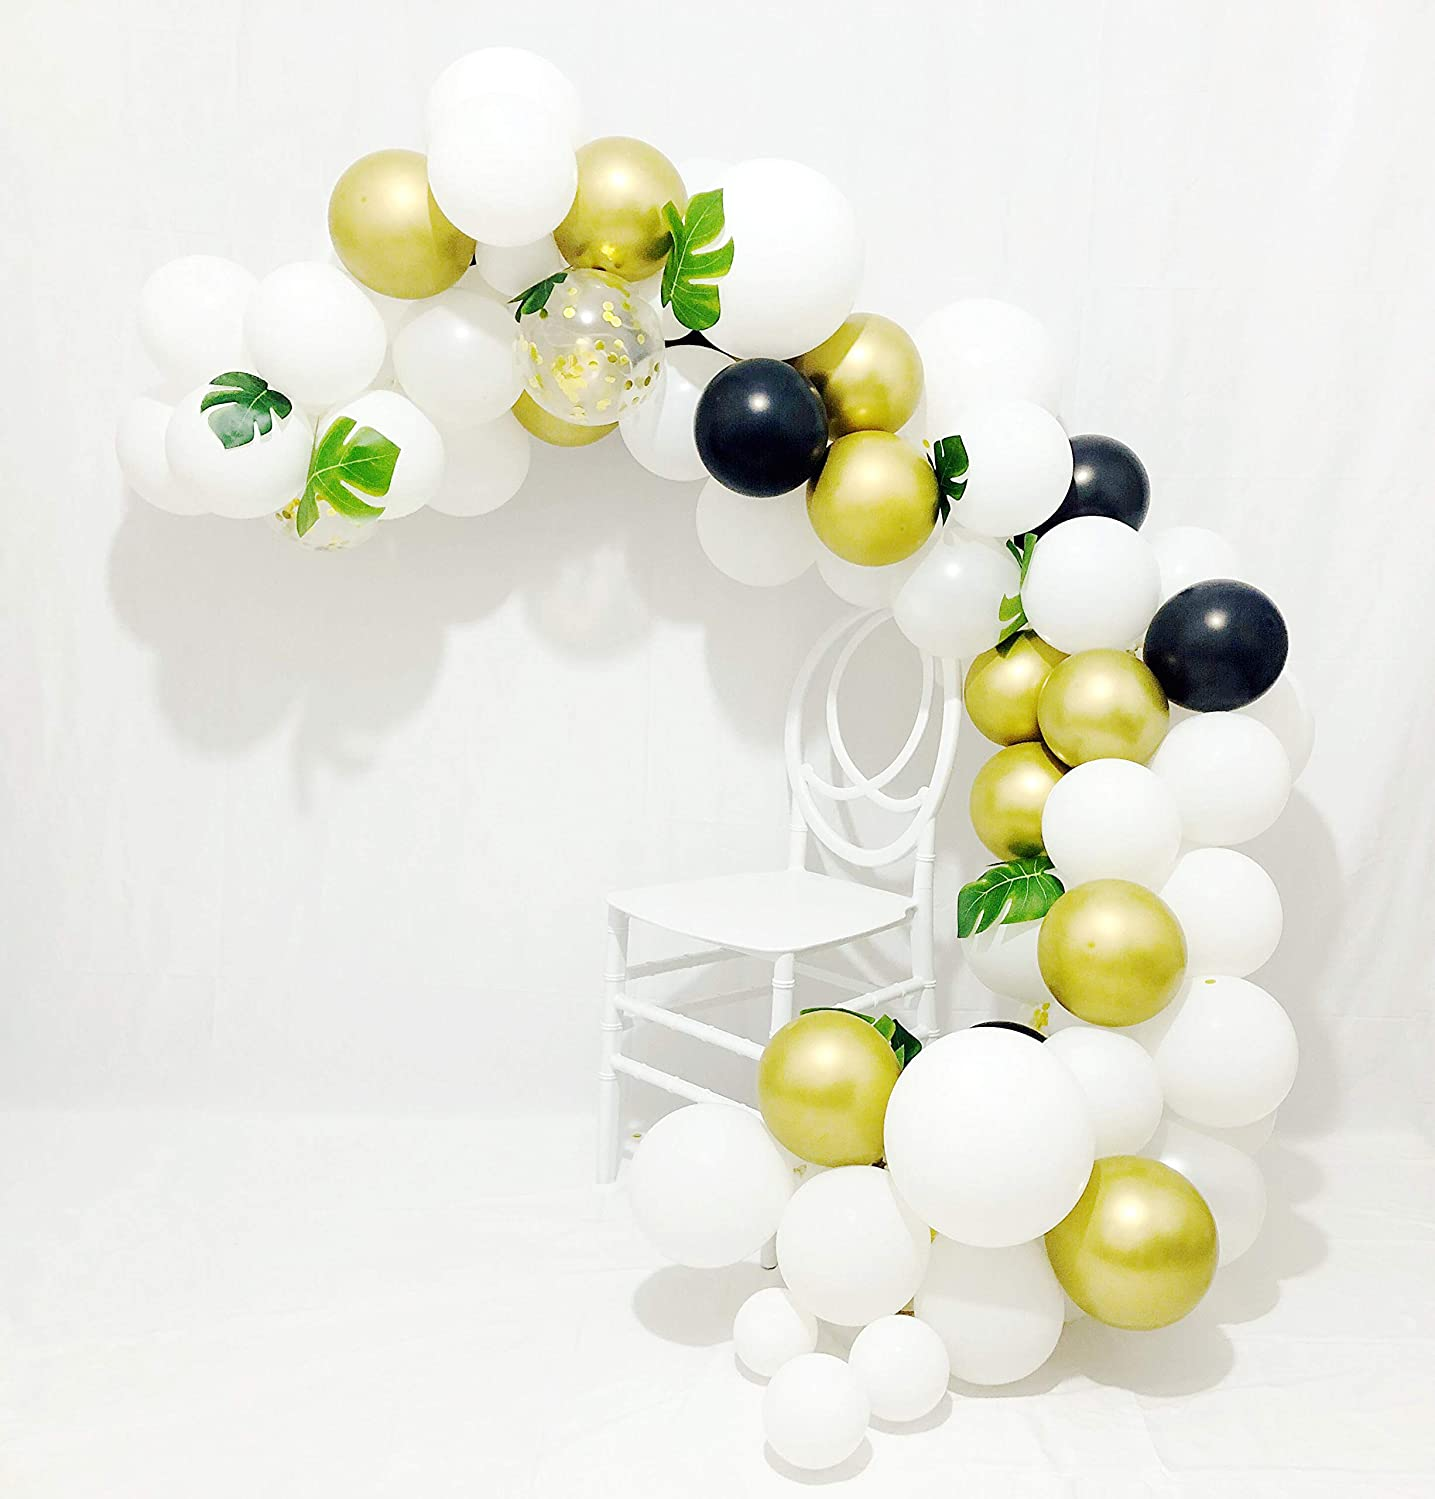 Sogorge Balloon Arch & Garland Kit   80 Pearl White, Black,Chrome Gold Latex Balloons, Gold Confetti Balloons   24 Green Palm Leaves   Glue Dots   Decorating Strip   Holiday, Wedding, Baby Shower, Graduation, Anniversary Organic DIY Party Decorations